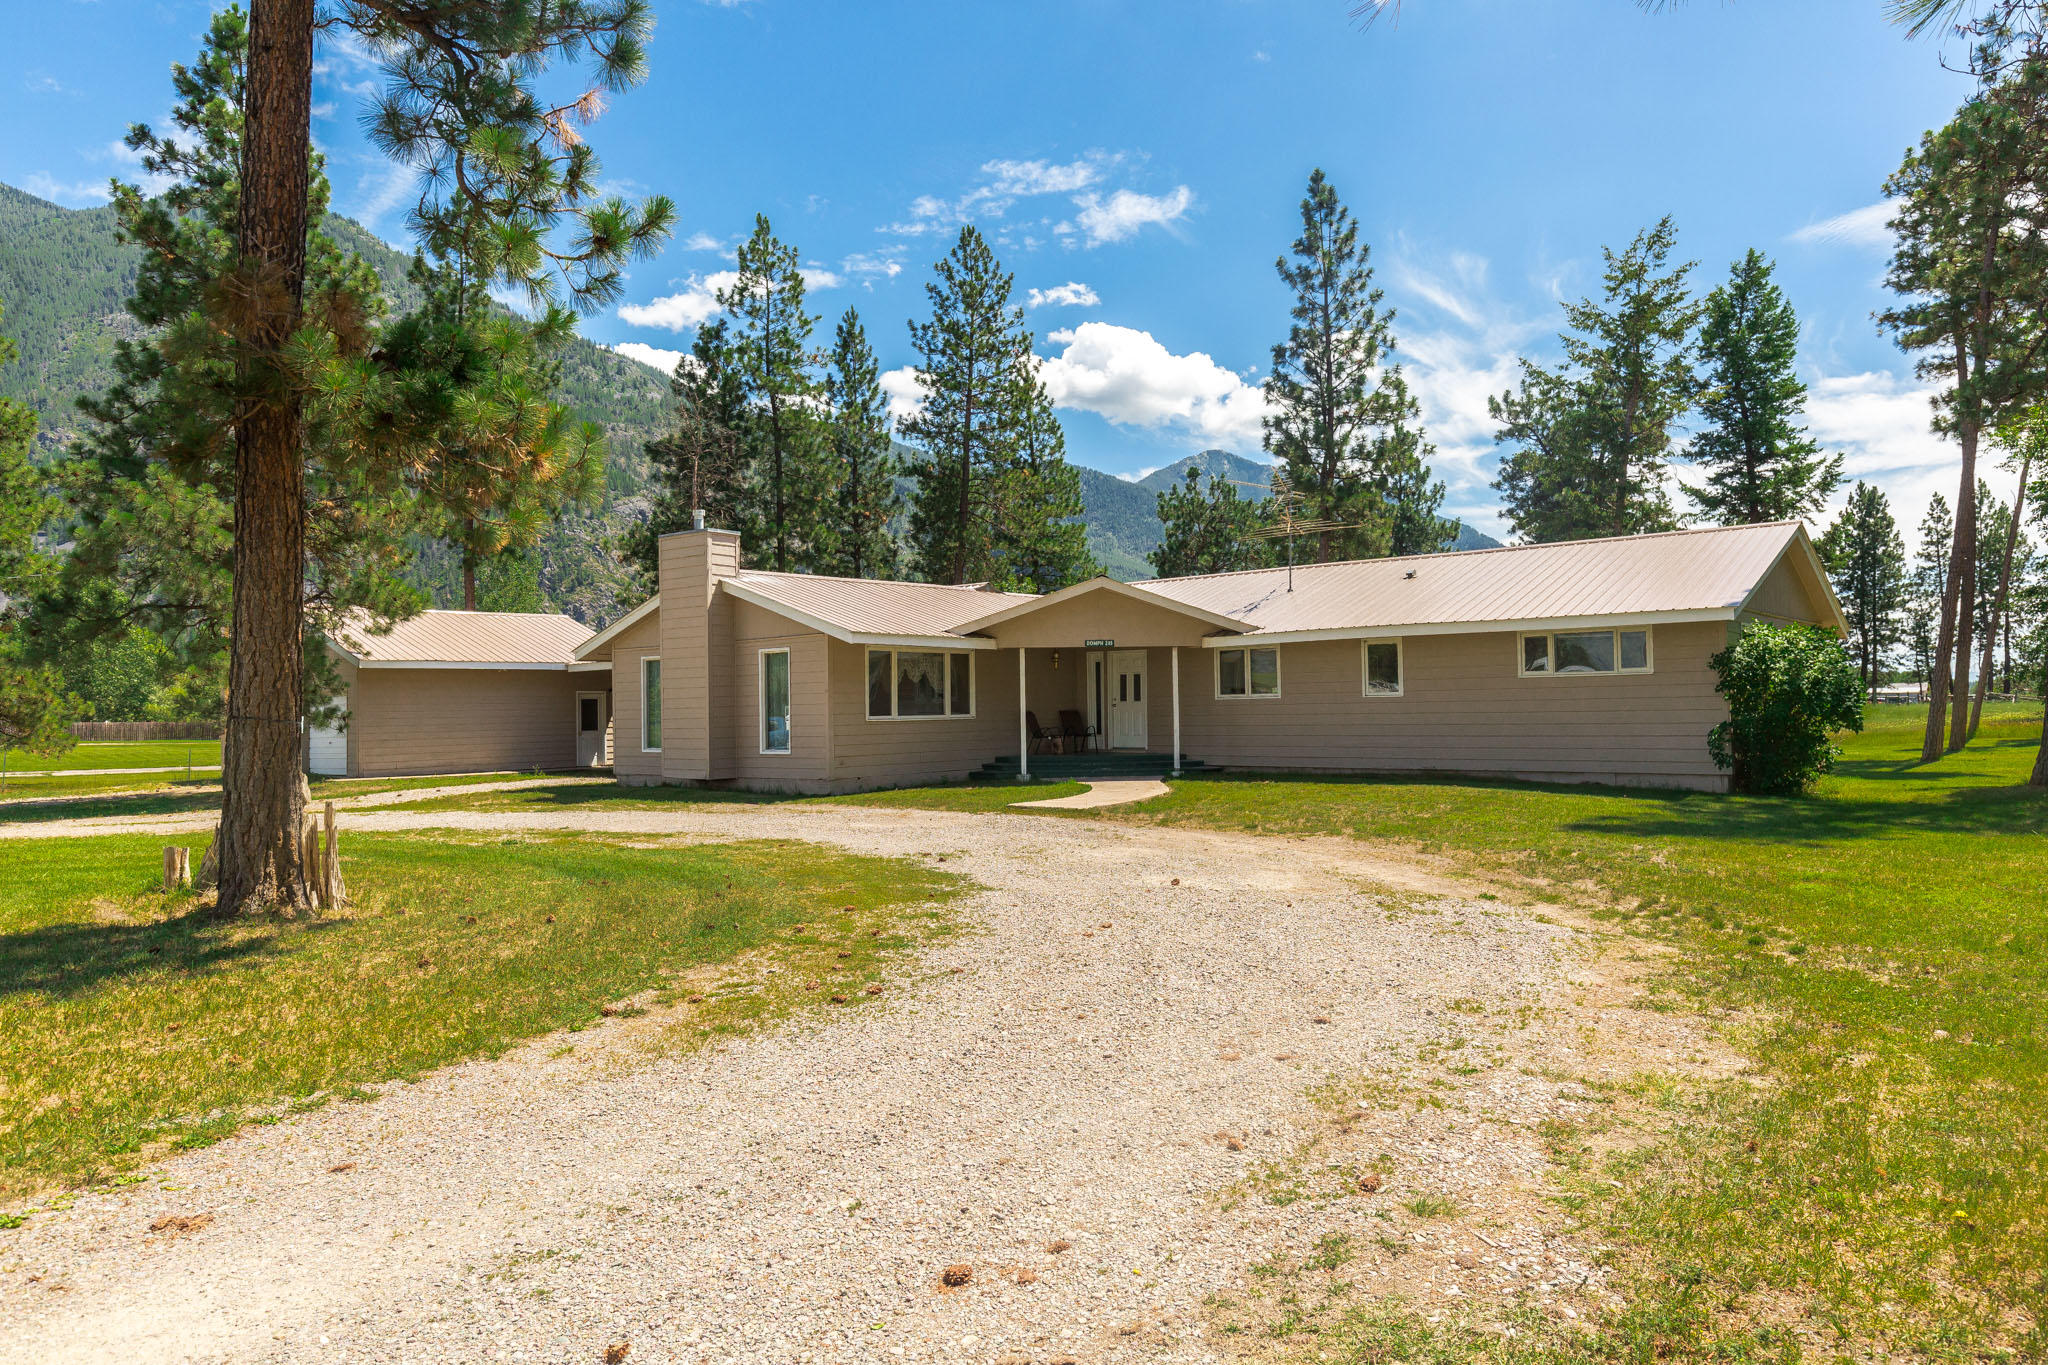 Home for Sale at 295 Jensen Road in Columbia Falls, Montana